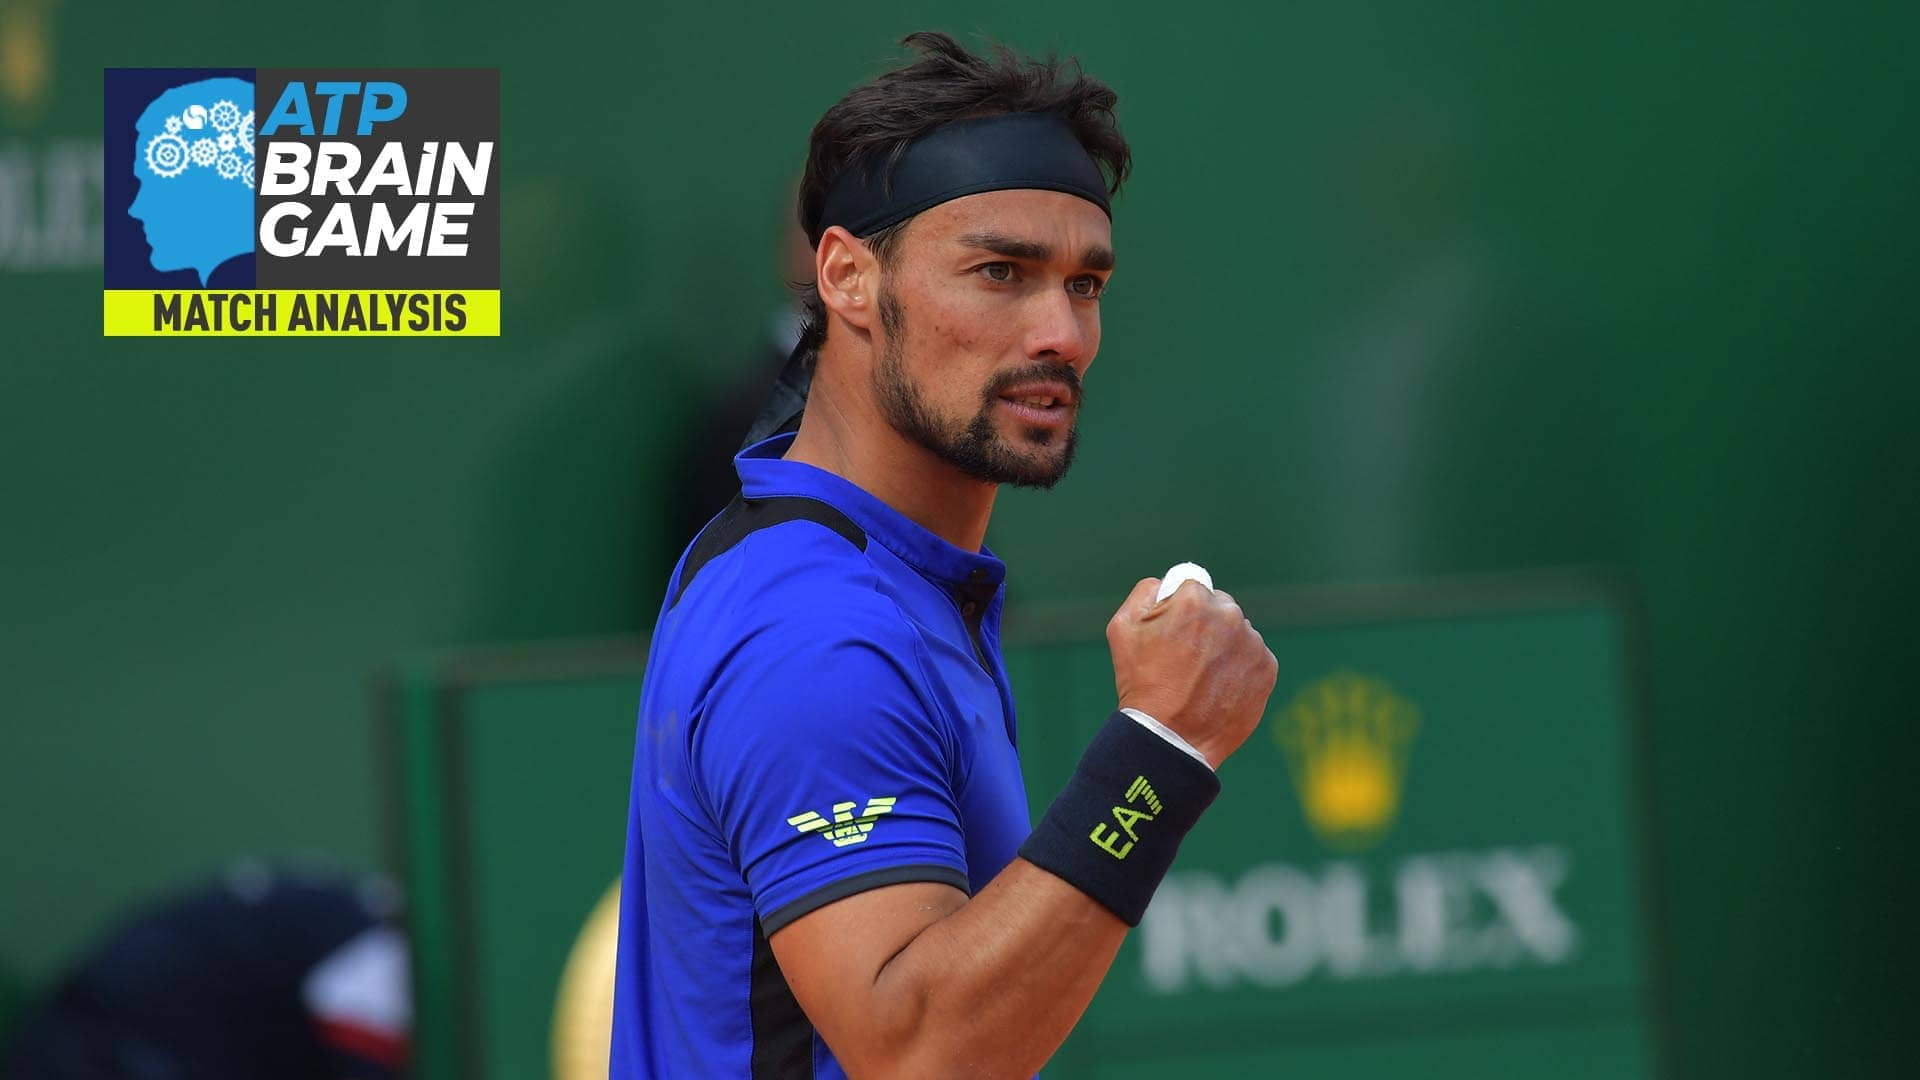 Fabio Fognini recorded his fourth victory in 15 FedEx ATP Head2Head meetings against Rafael Nadal at the Rolex Monte-Carlo Masters on Saturday.